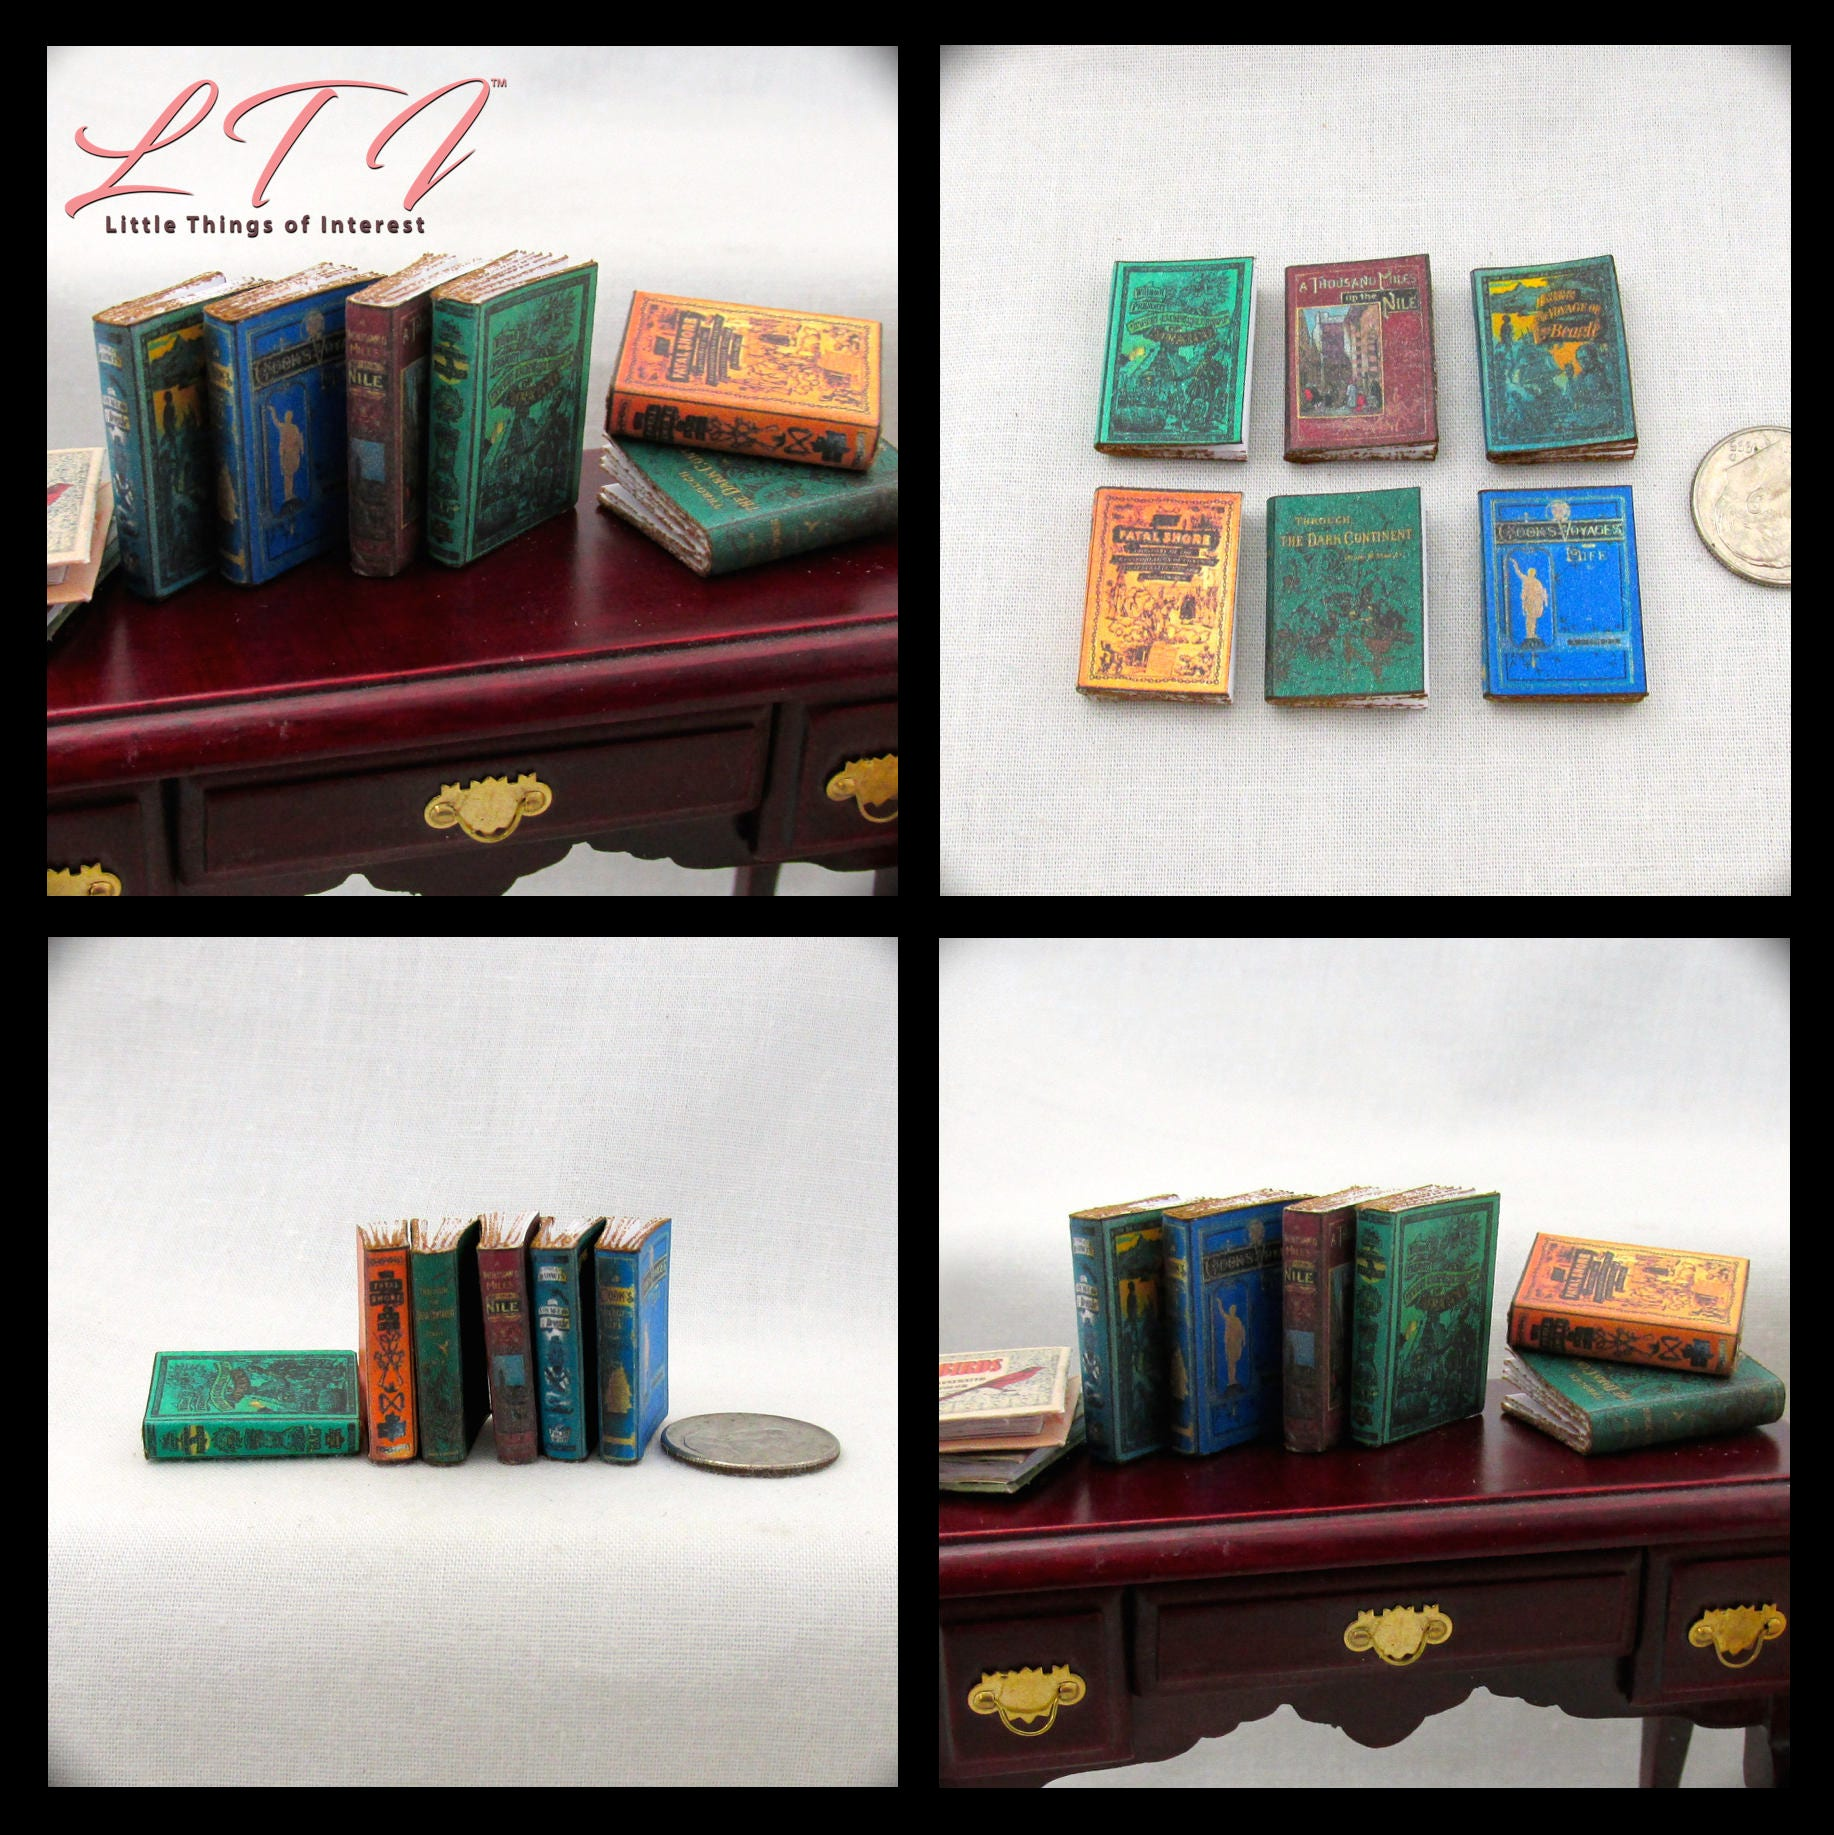 6 GREAT EXPLORERS Miniature Dollhouse Books 112 Scale Faux Prop Fill Bookshelf Travel World Traveling Library